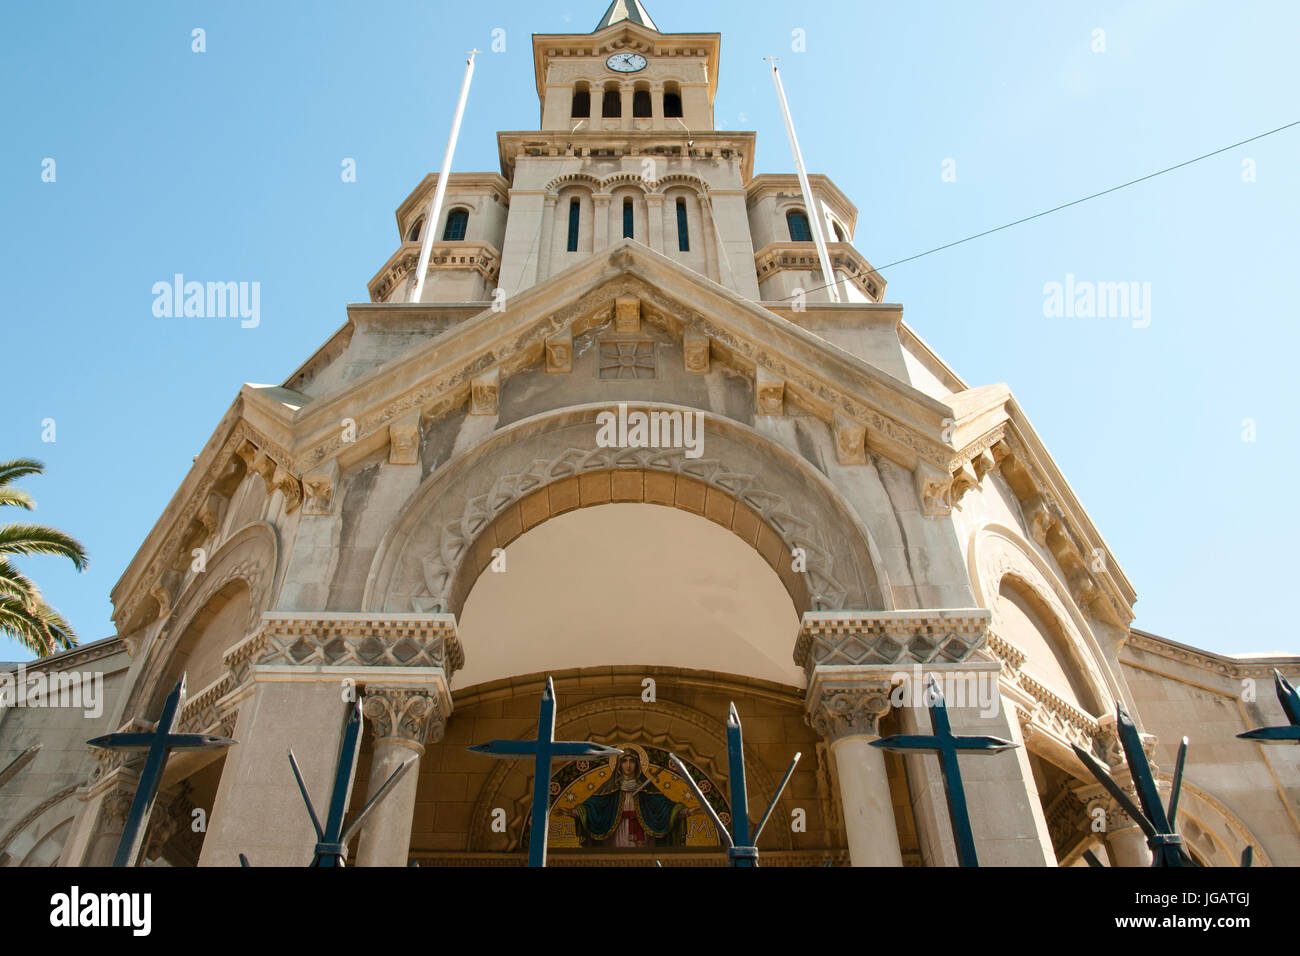 Our Lady of Agony Church - Vina Del Mar - Chile - Stock Image